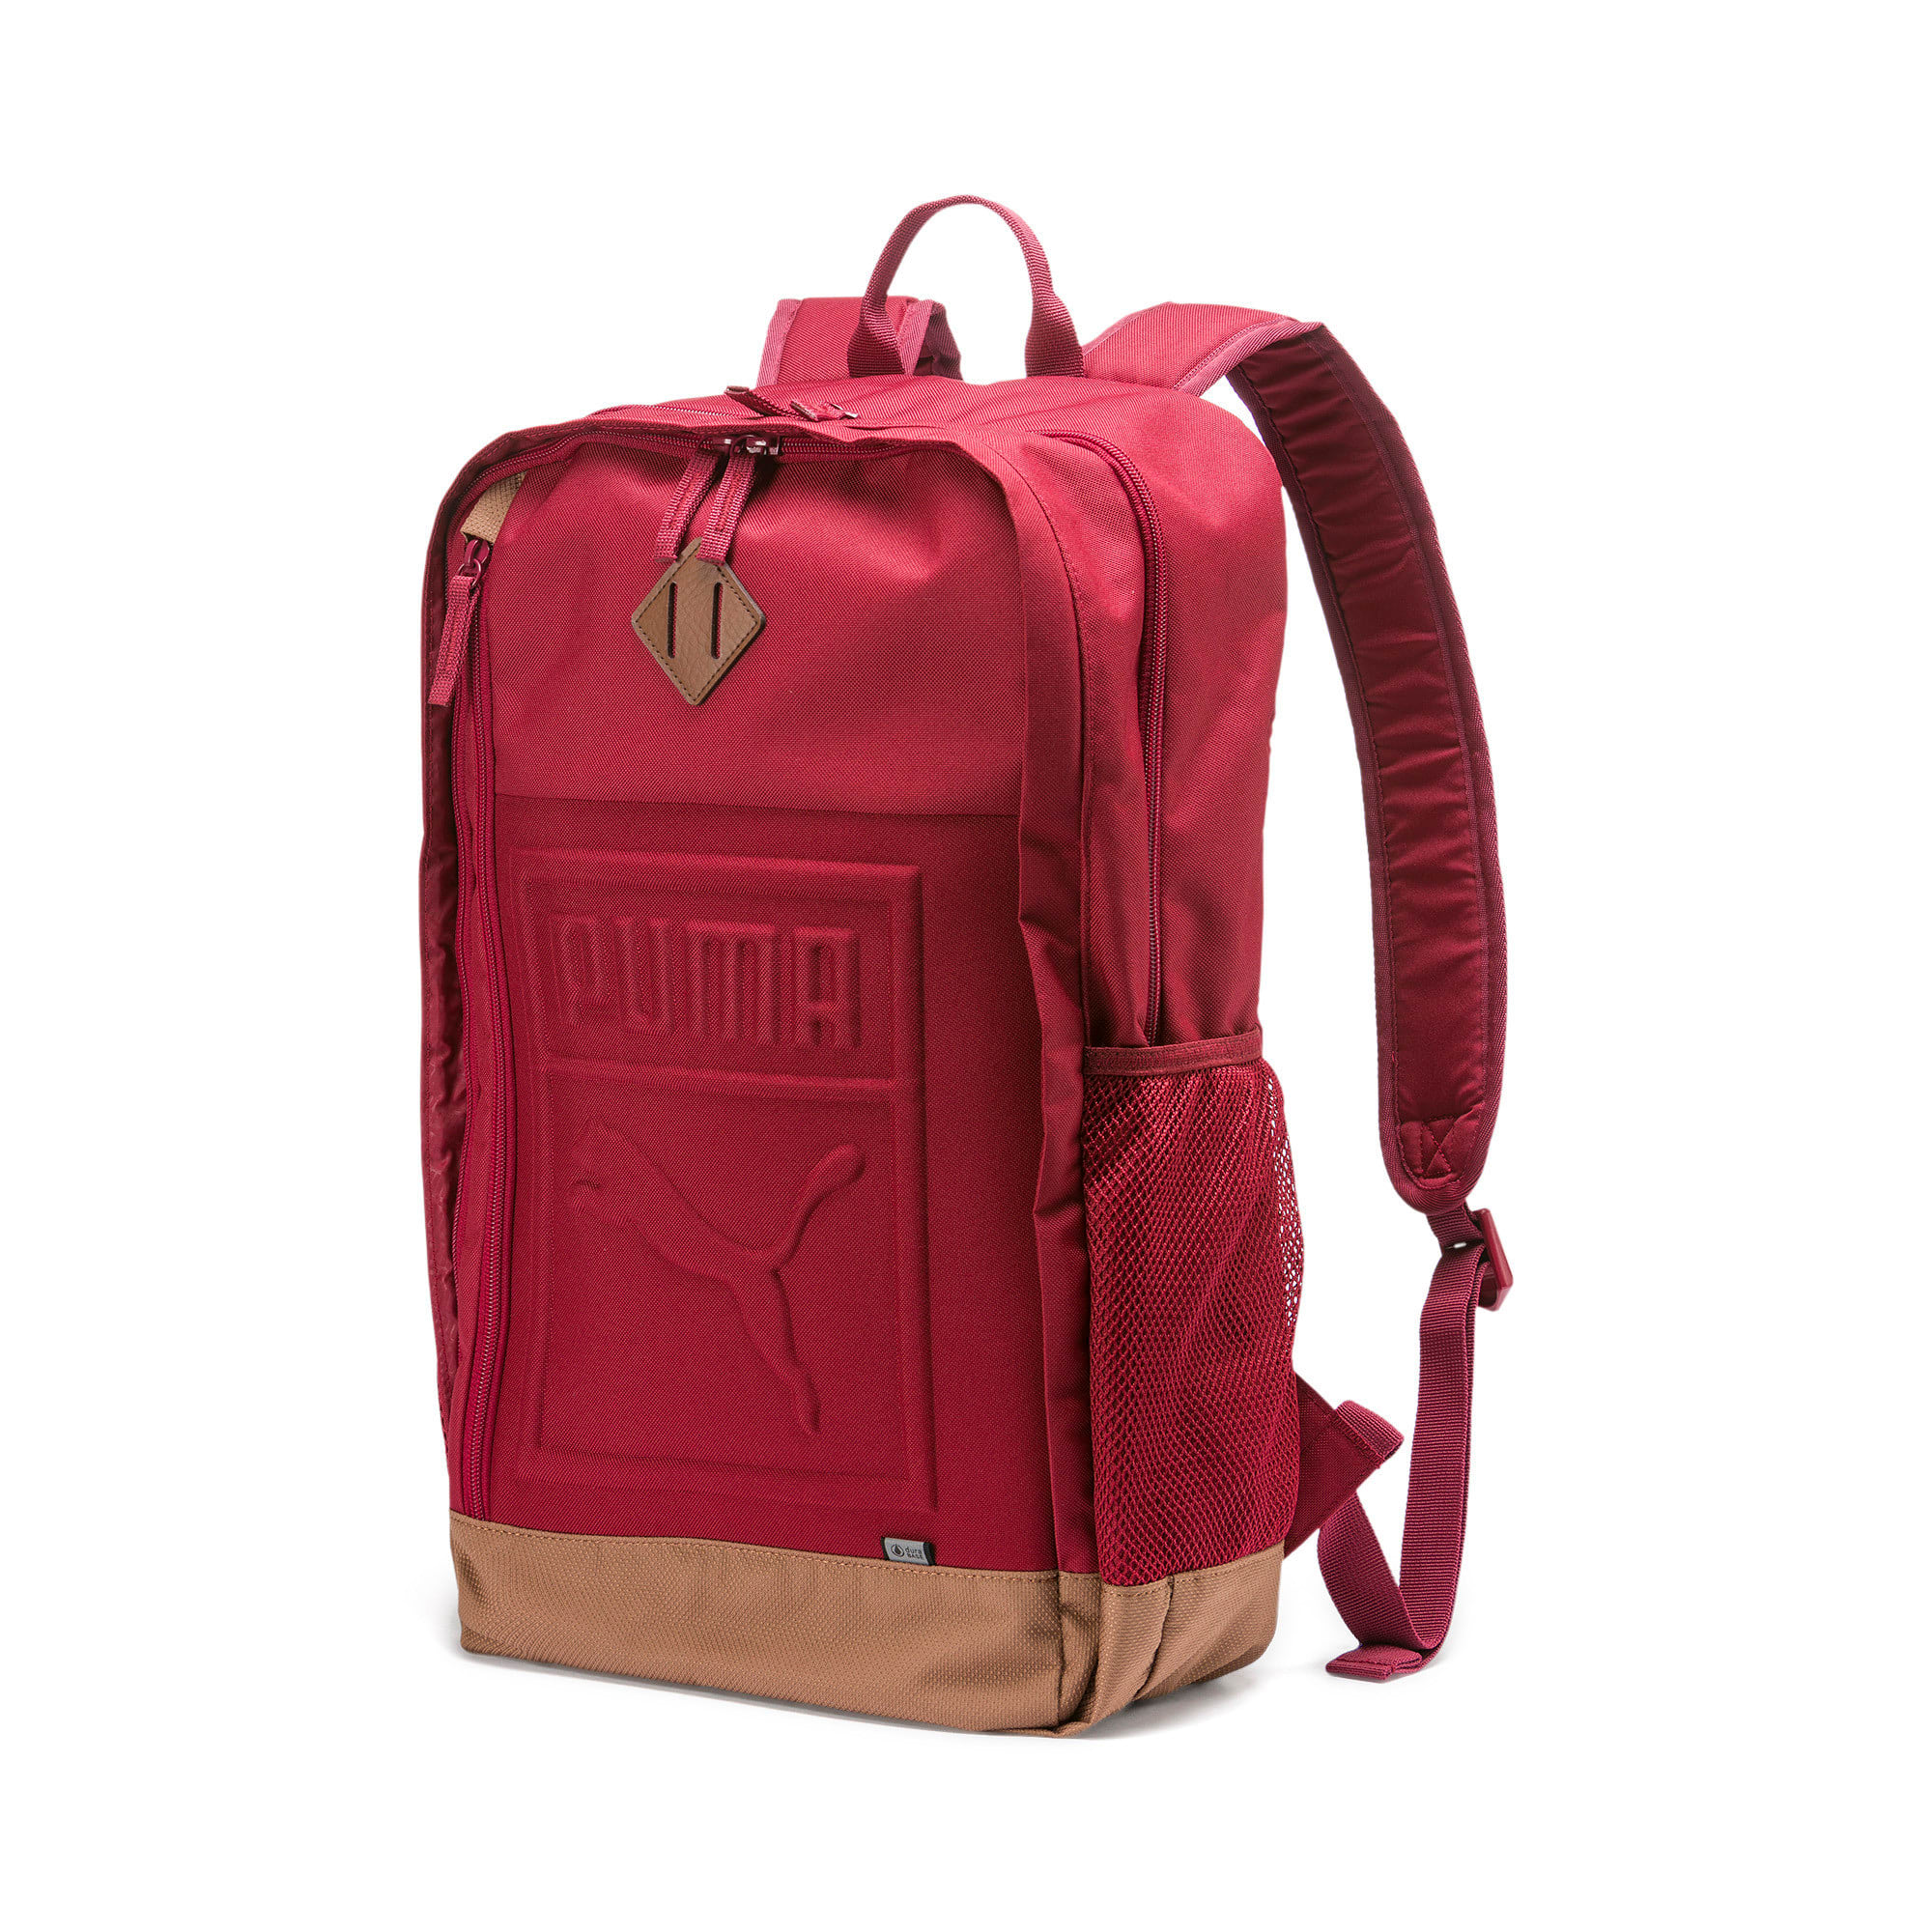 Thumbnail 1 of Square Backpack, Rhubarb, medium